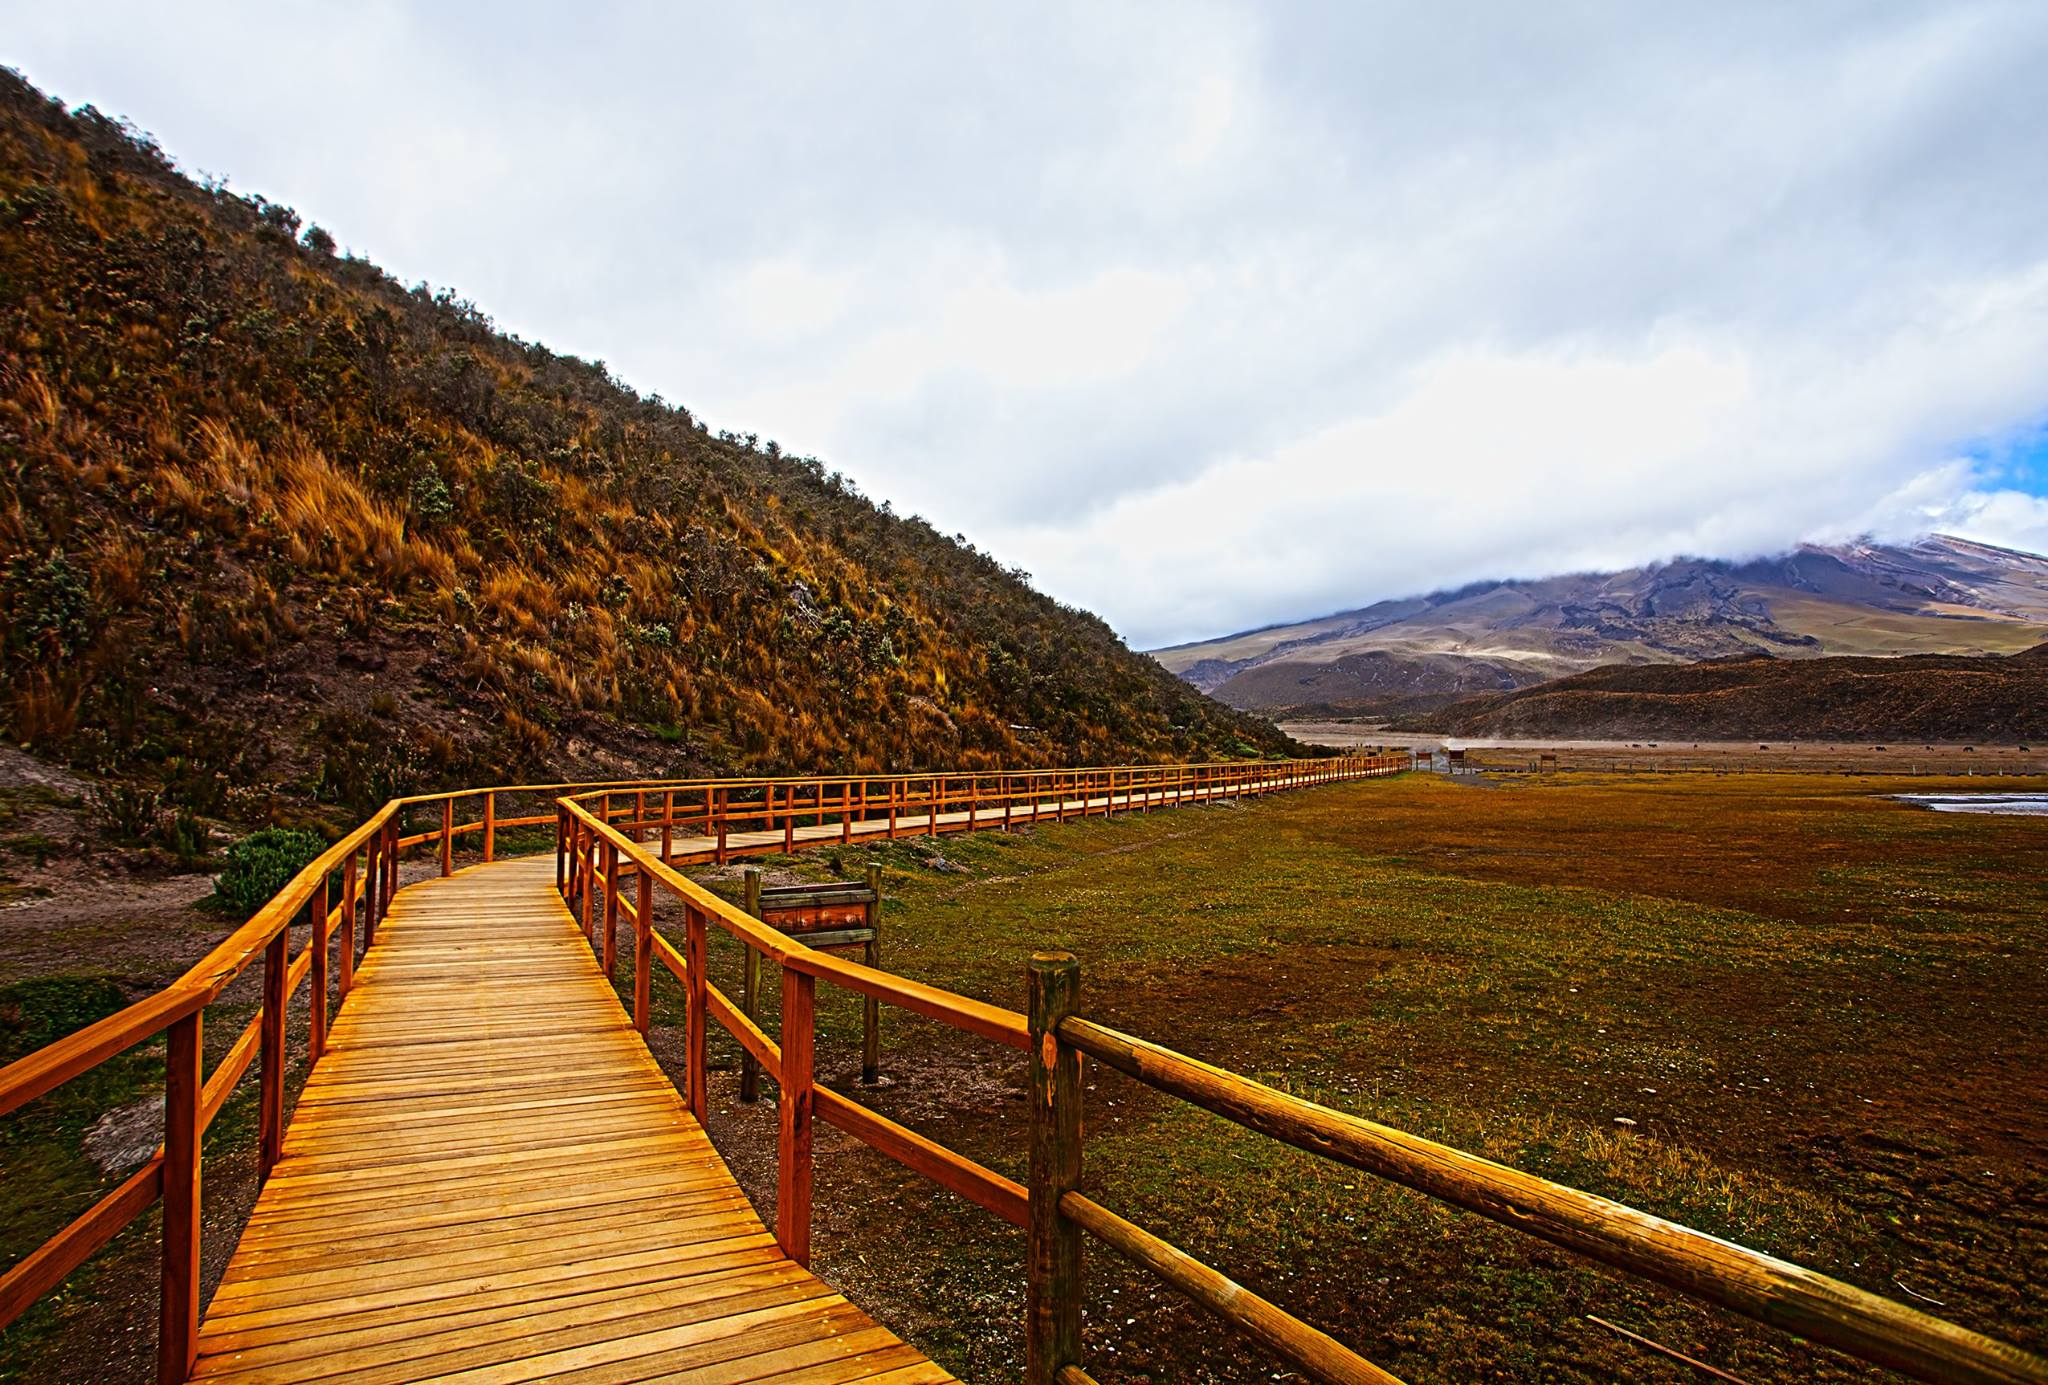 Wooden walkway in Cotopaxi National Park